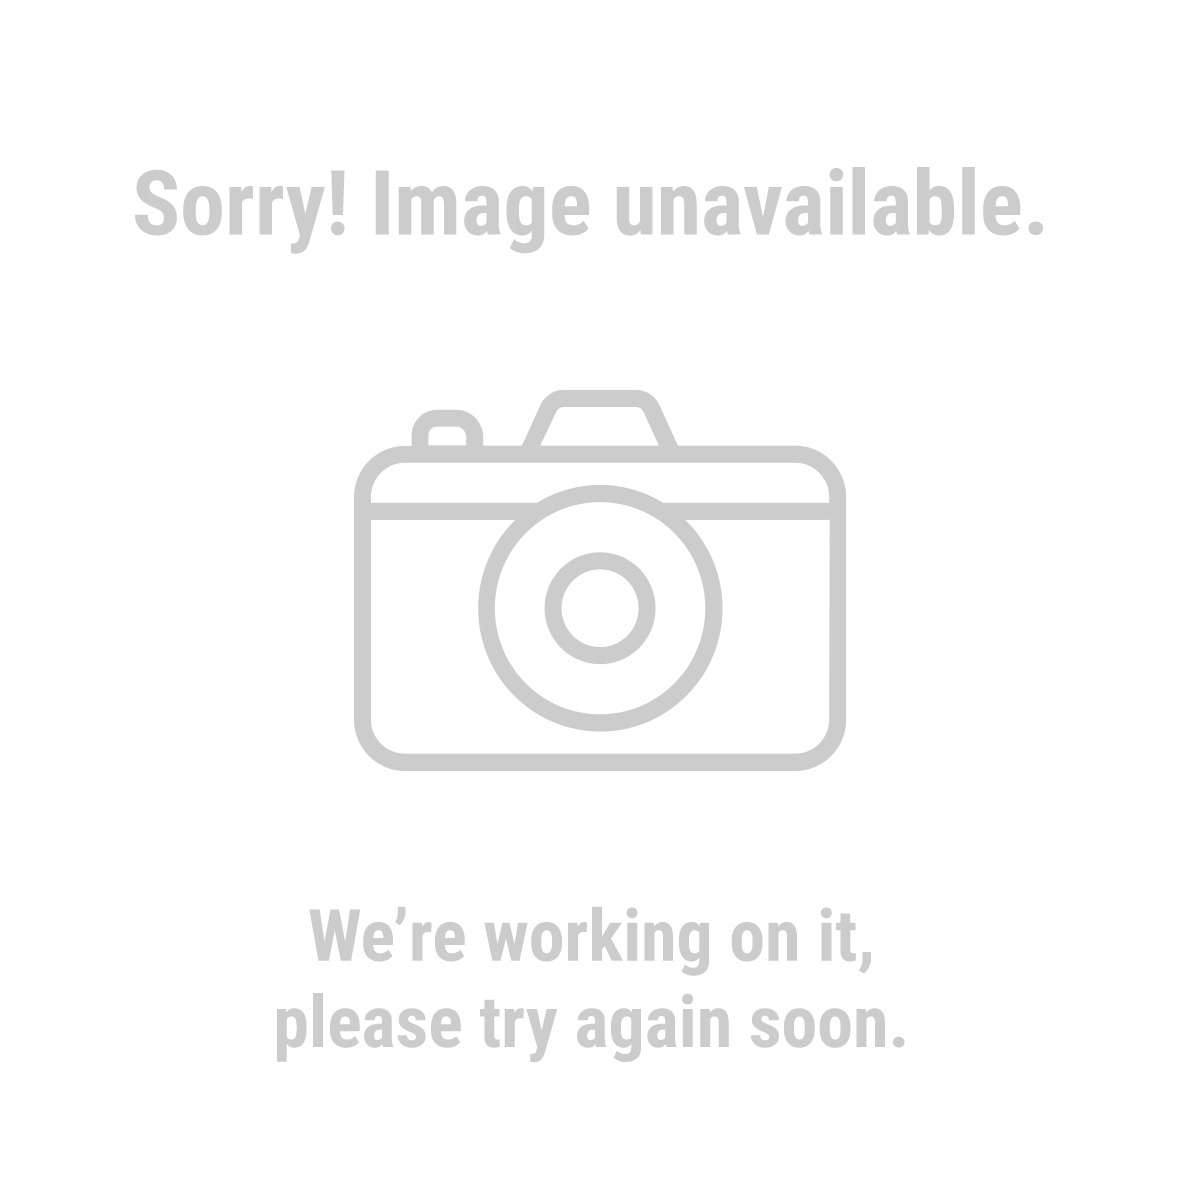 One Stop Gardens 61682 32 in. x 10 in. x 15 in.  Medium Animal Trap